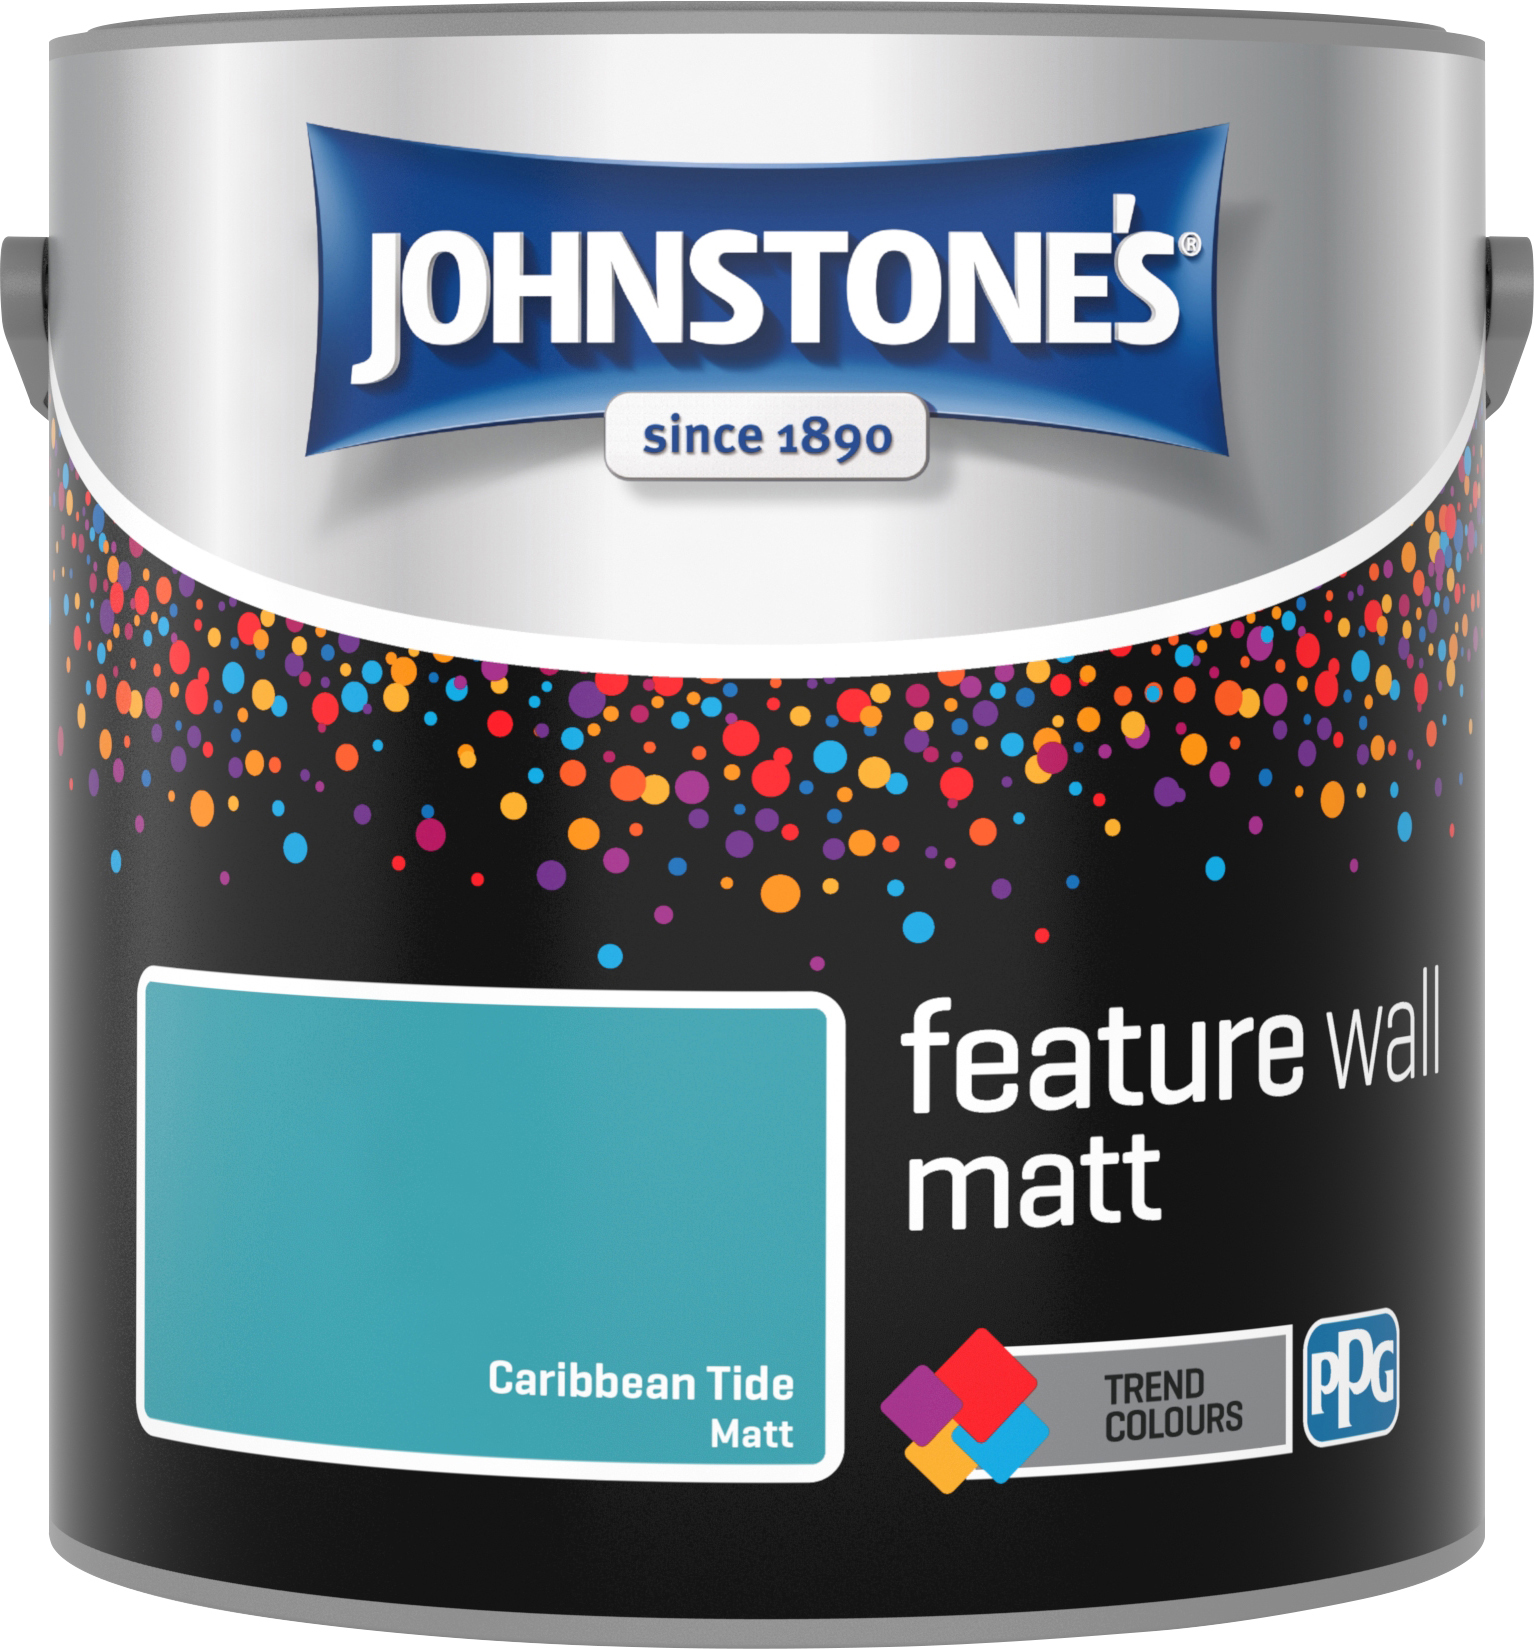 Johnstone's 2.5 Litre Feature Wall Matt Emulsion Paint - Caribbean Tide